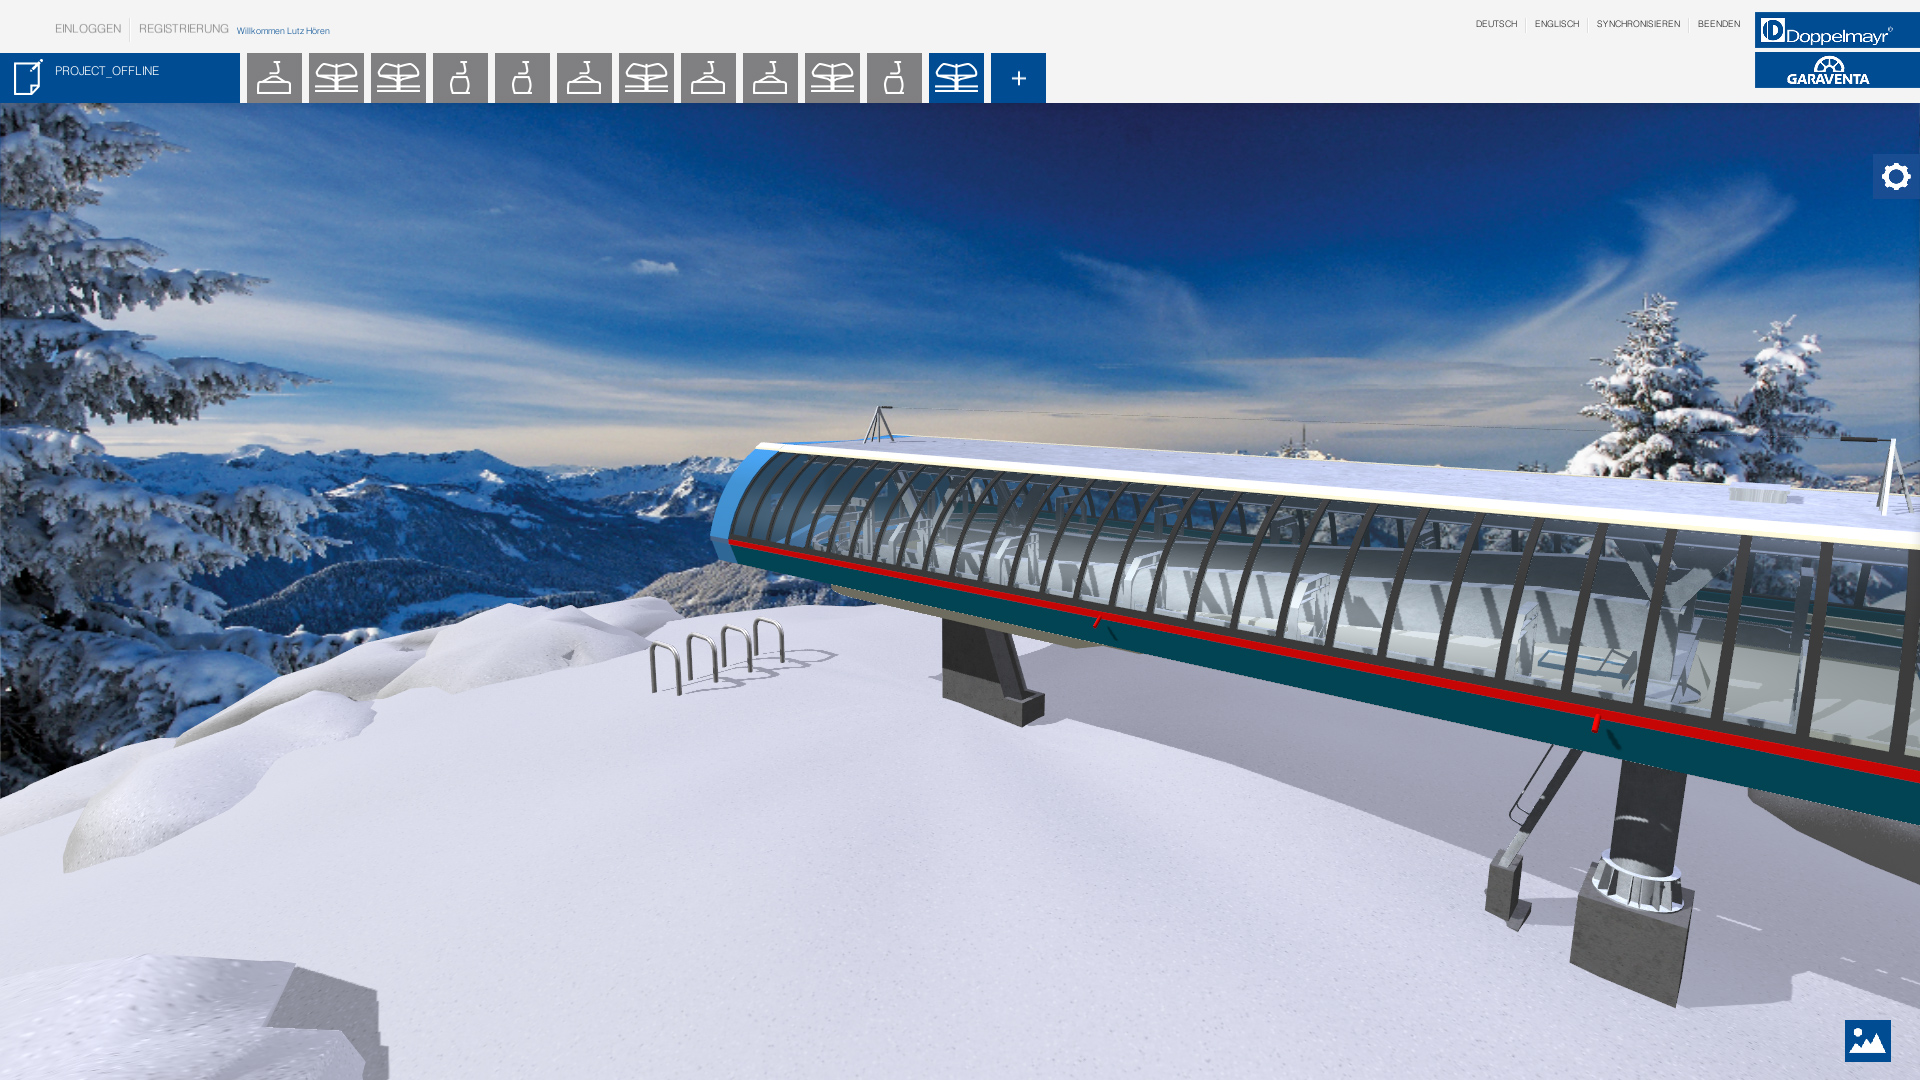 doppelmayr webapplication ropeway configurator station